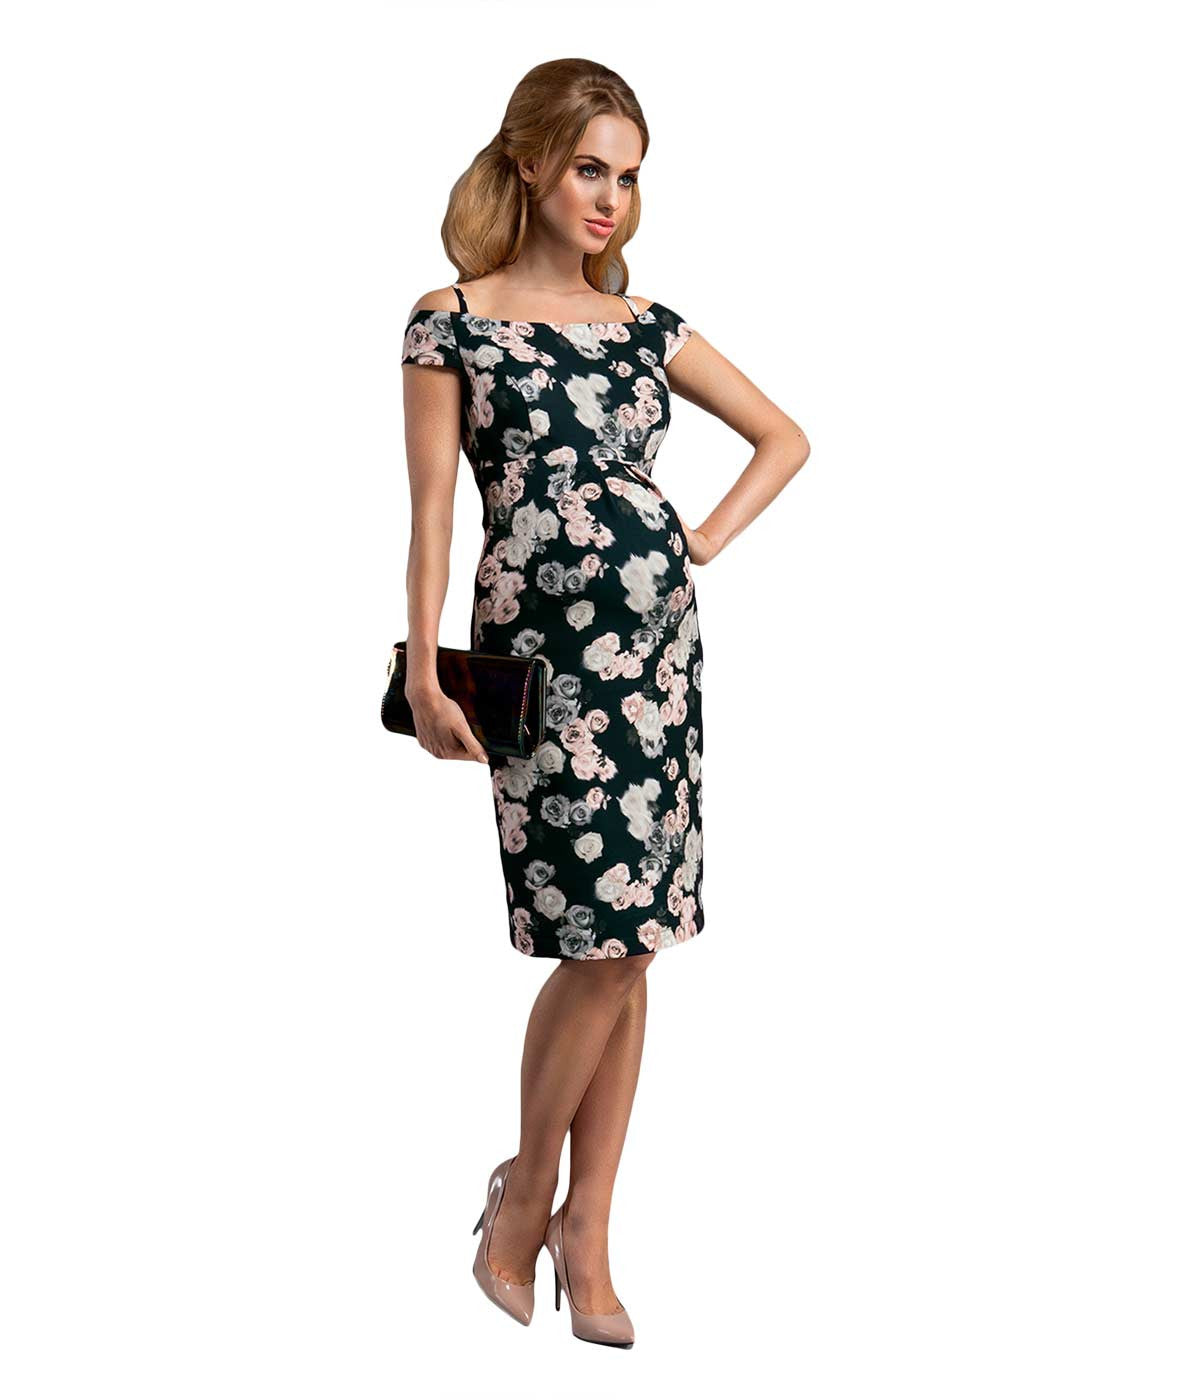 Maternity dresses smartmother uae mums fav online shop night flowers elegant dress in maternity dresses in maternity smartmother 1 ombrellifo Choice Image